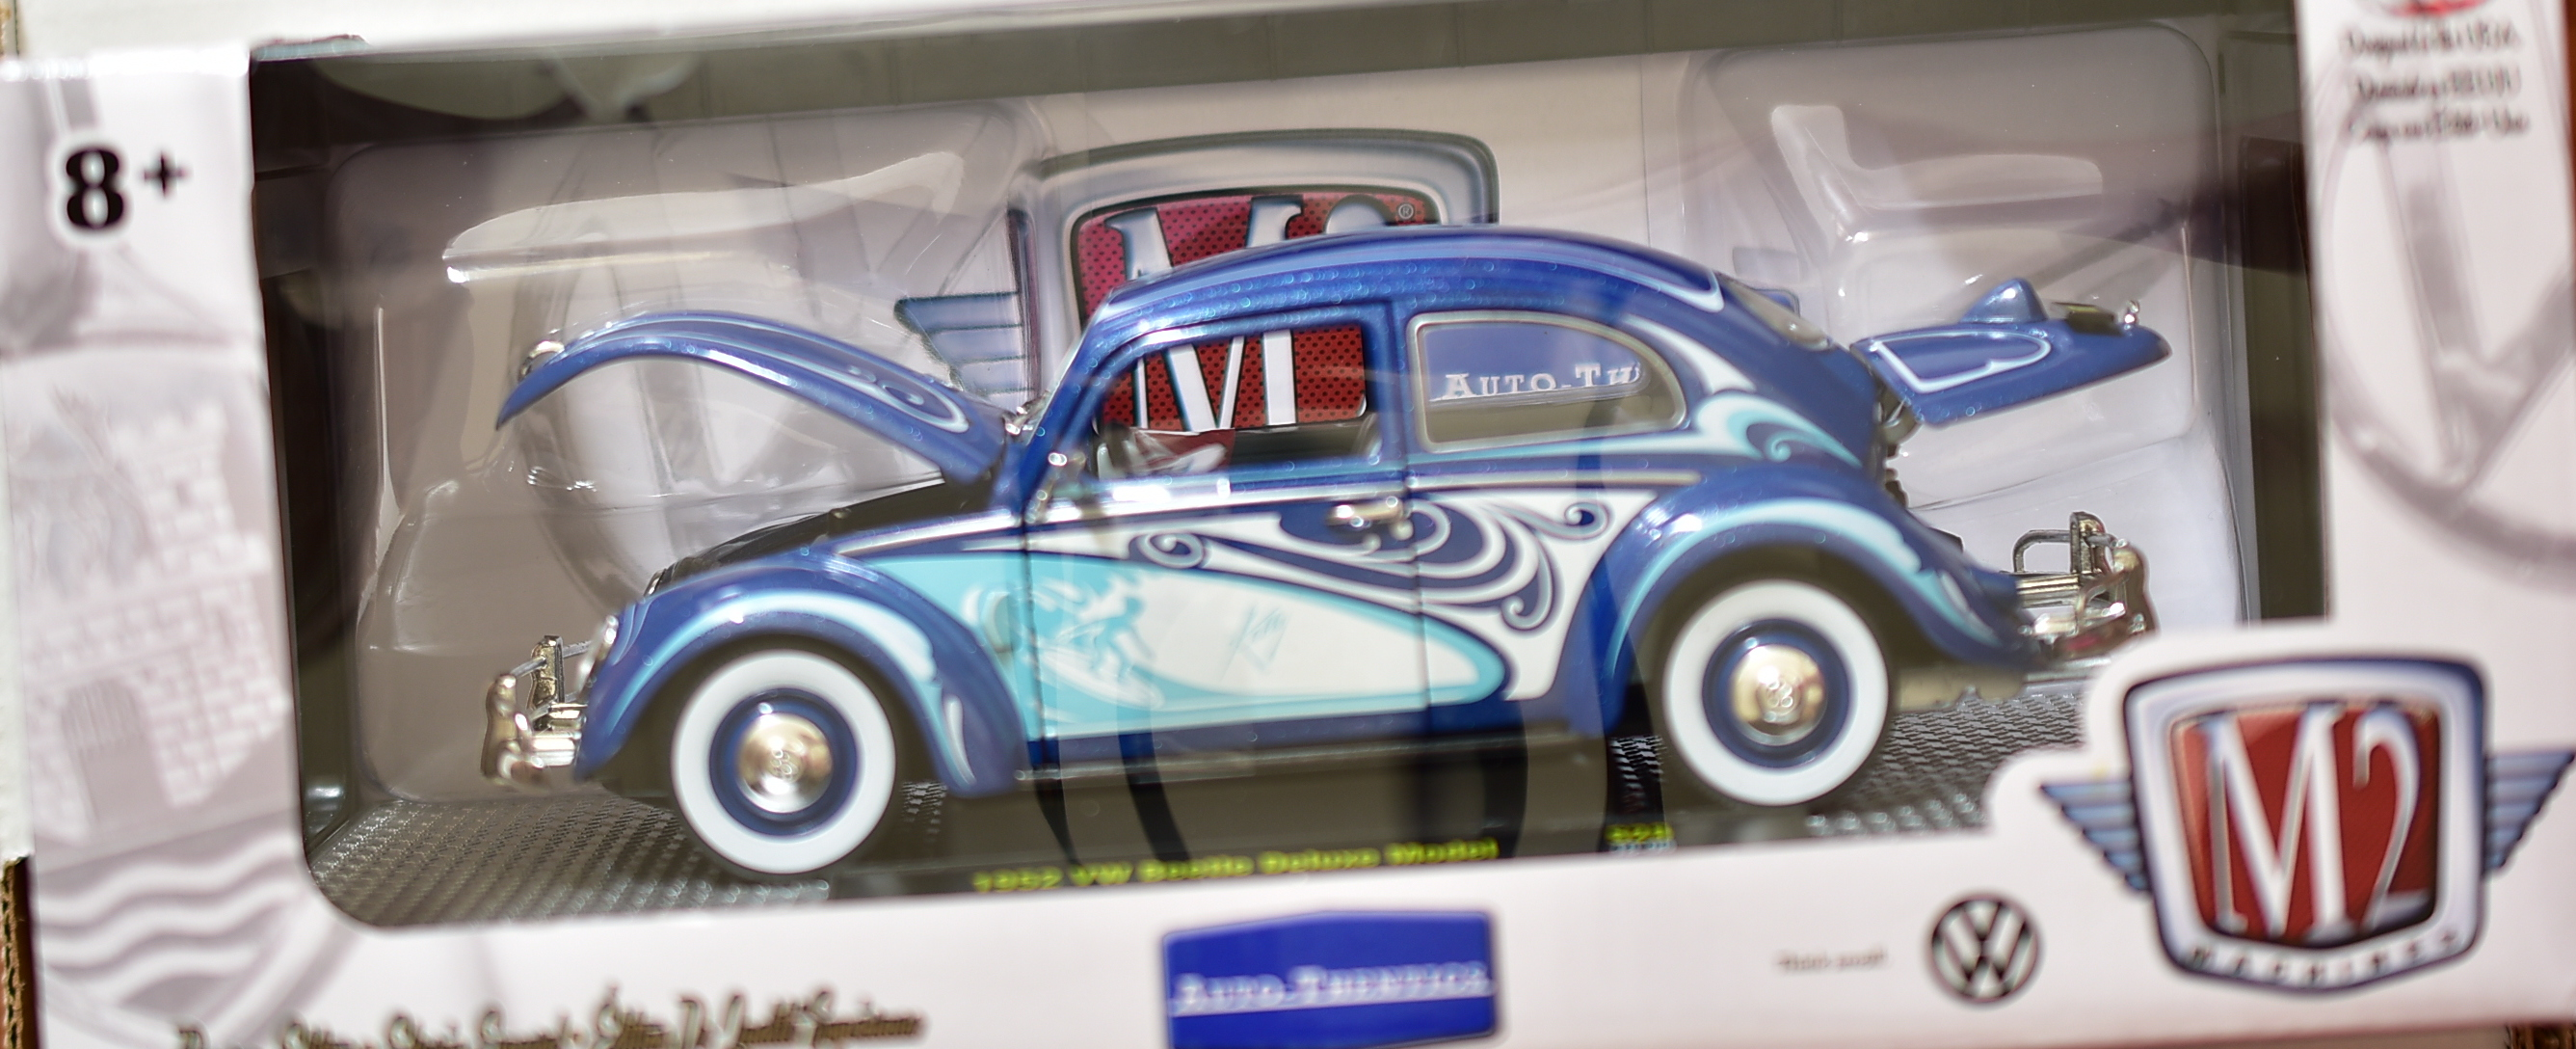 M2 MACHINES AUTO - THENTICS 1952 VW BEETLE DELUXE MODEL S28 1:24 WALMART